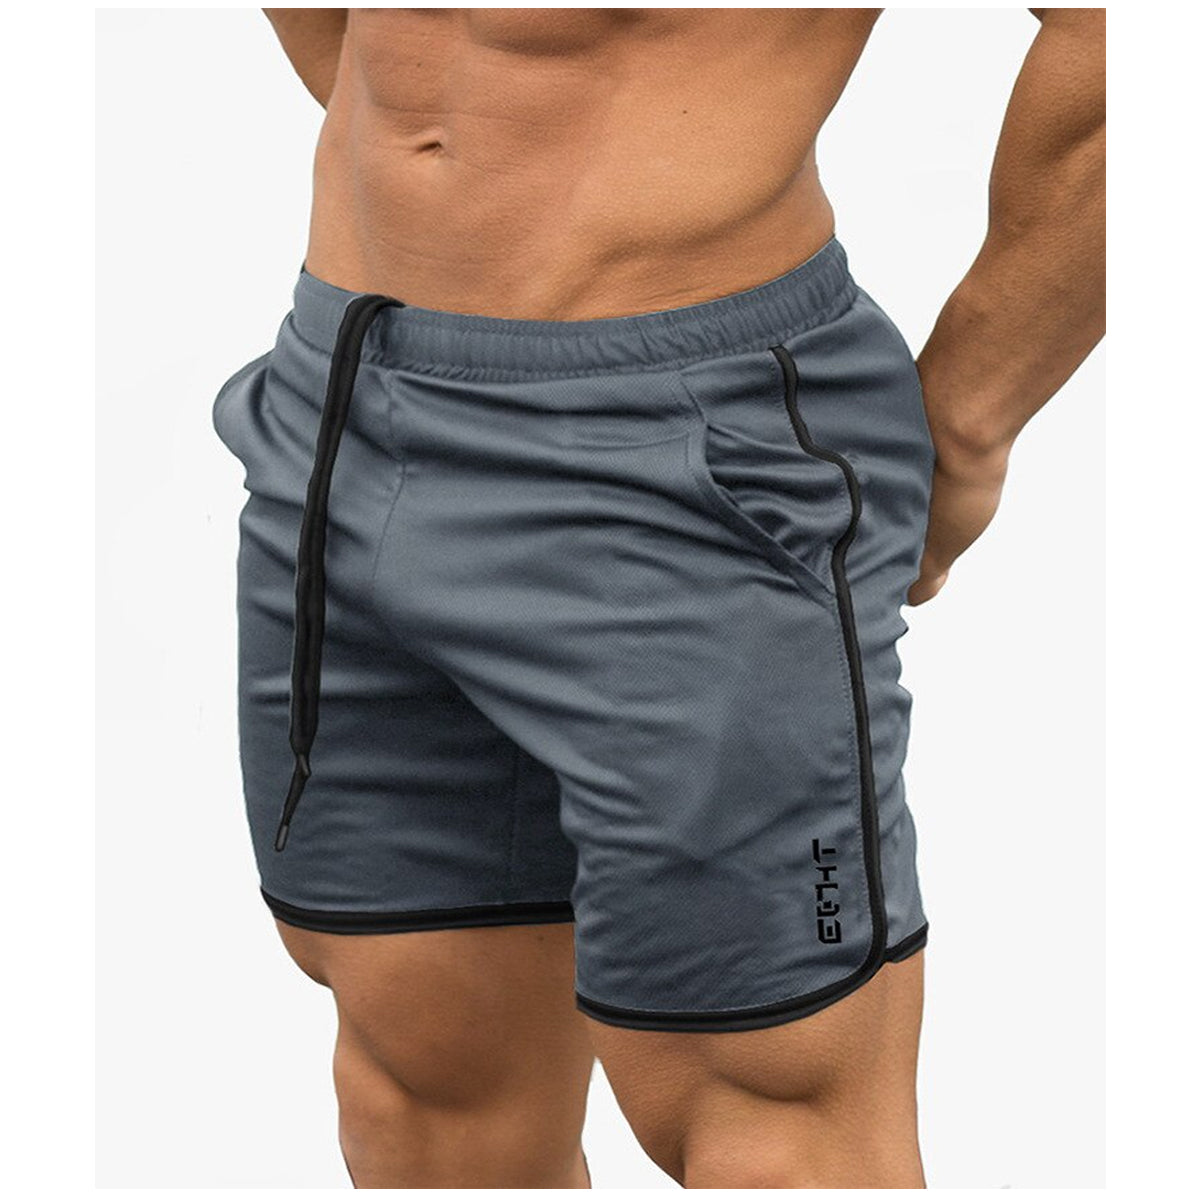 Cool Men's Sport Shorts with Elastic Waist & Drawstring